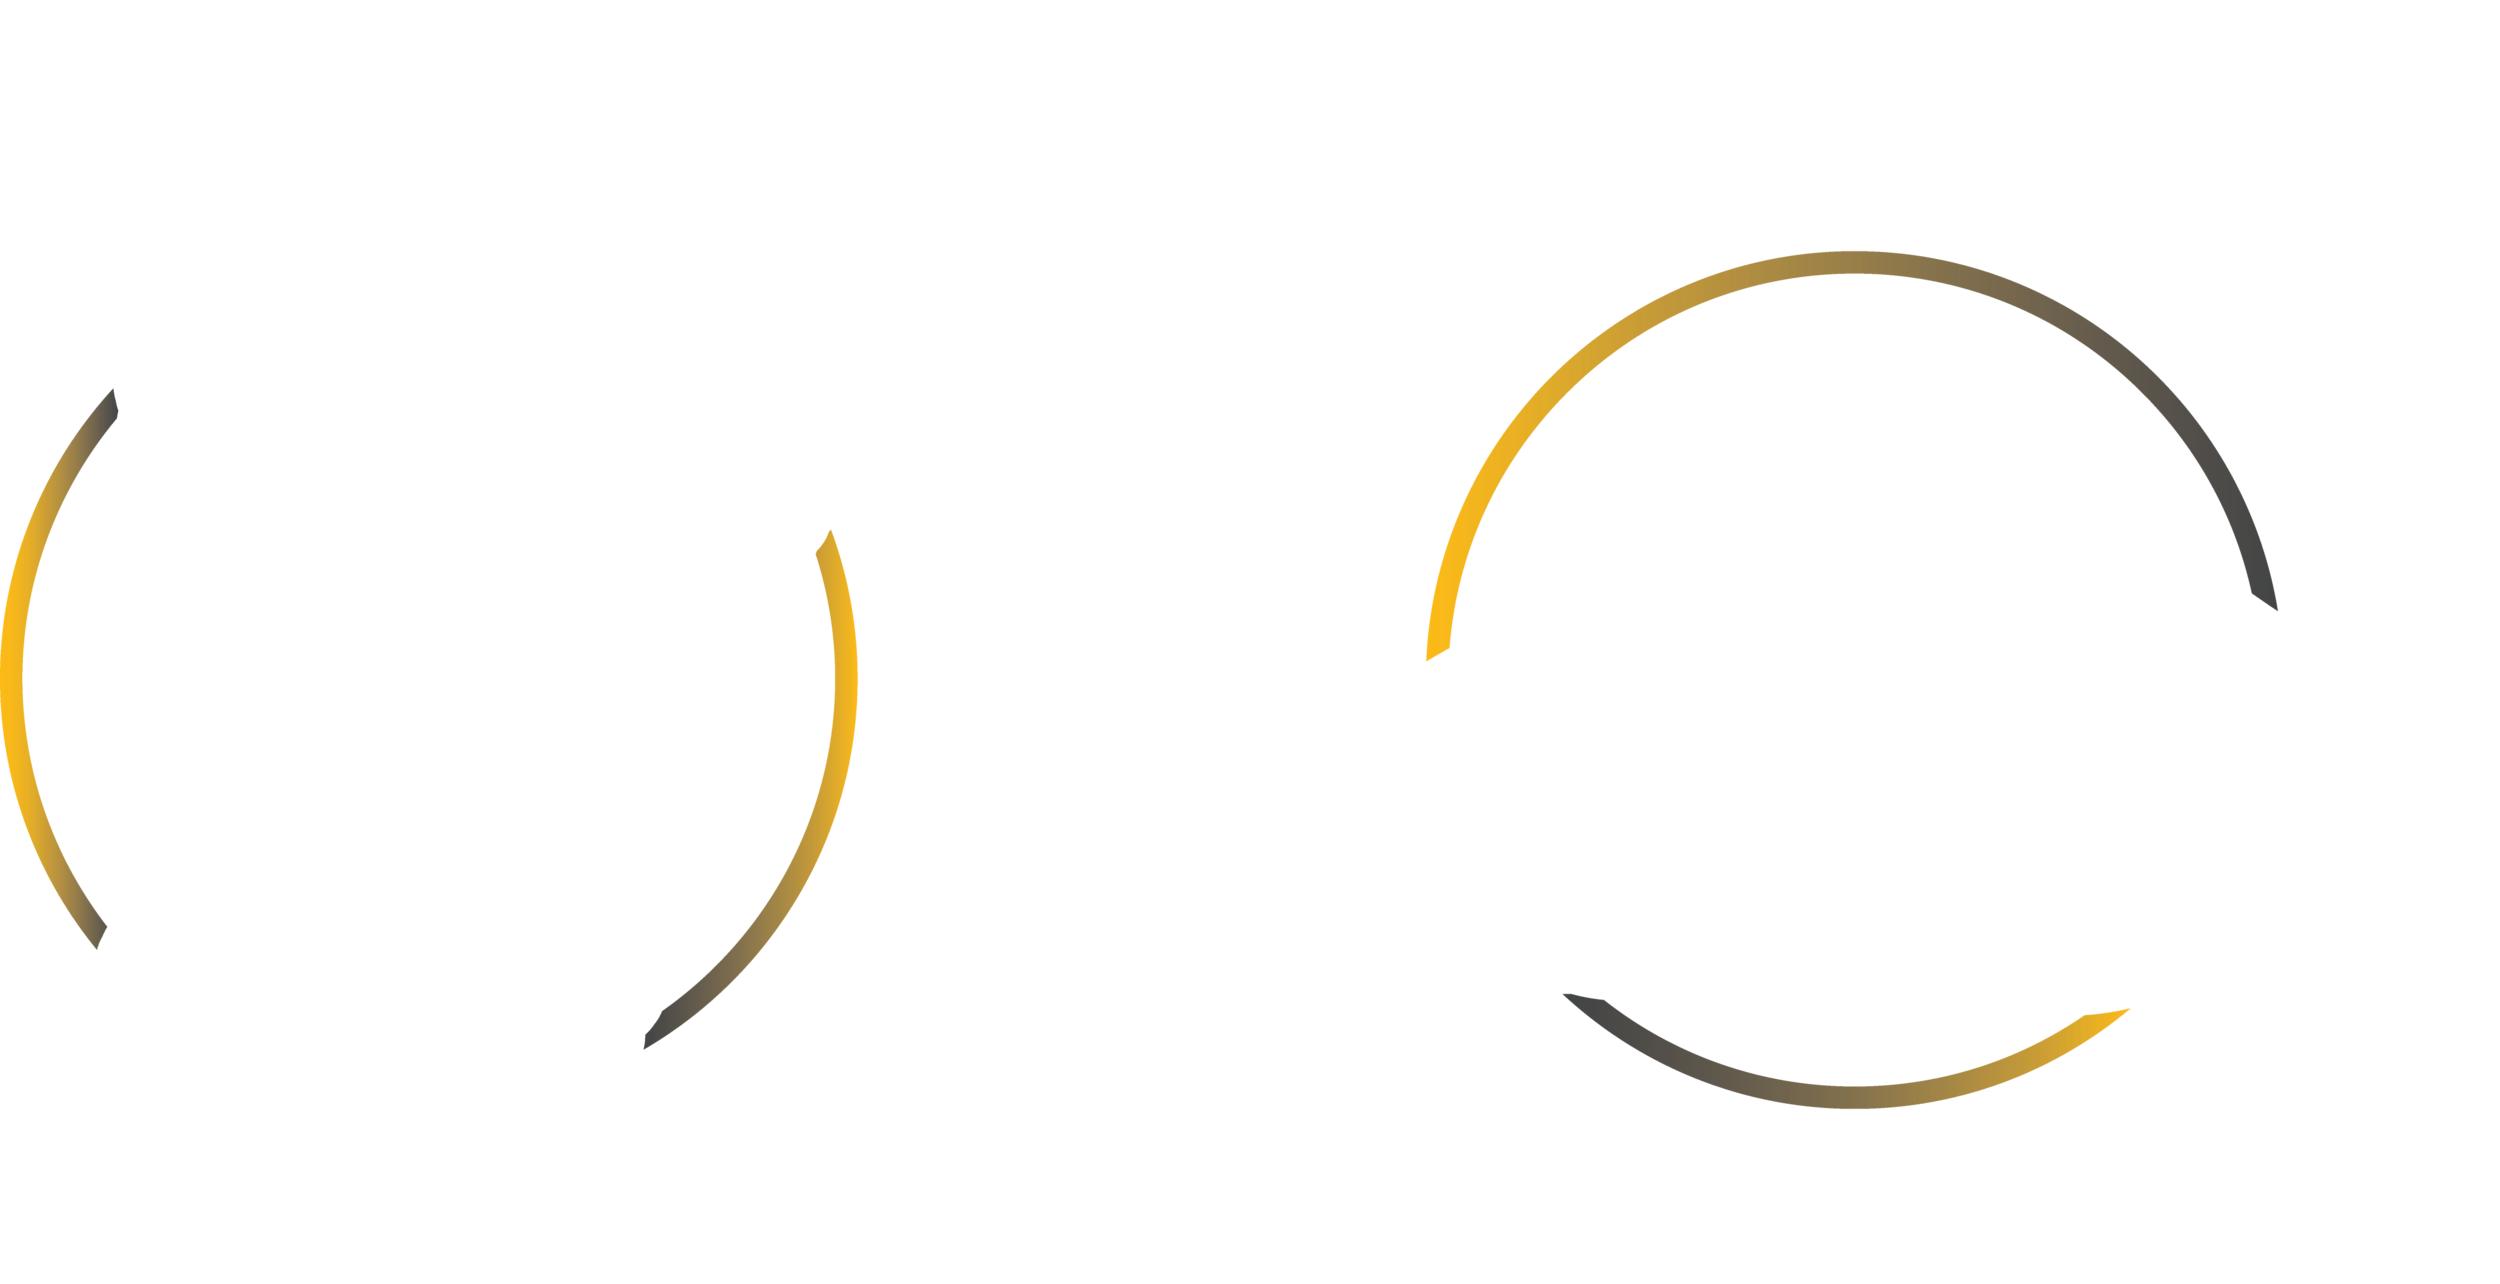 Product_Icons_Flower+Keif_White&Black&Yellow.png